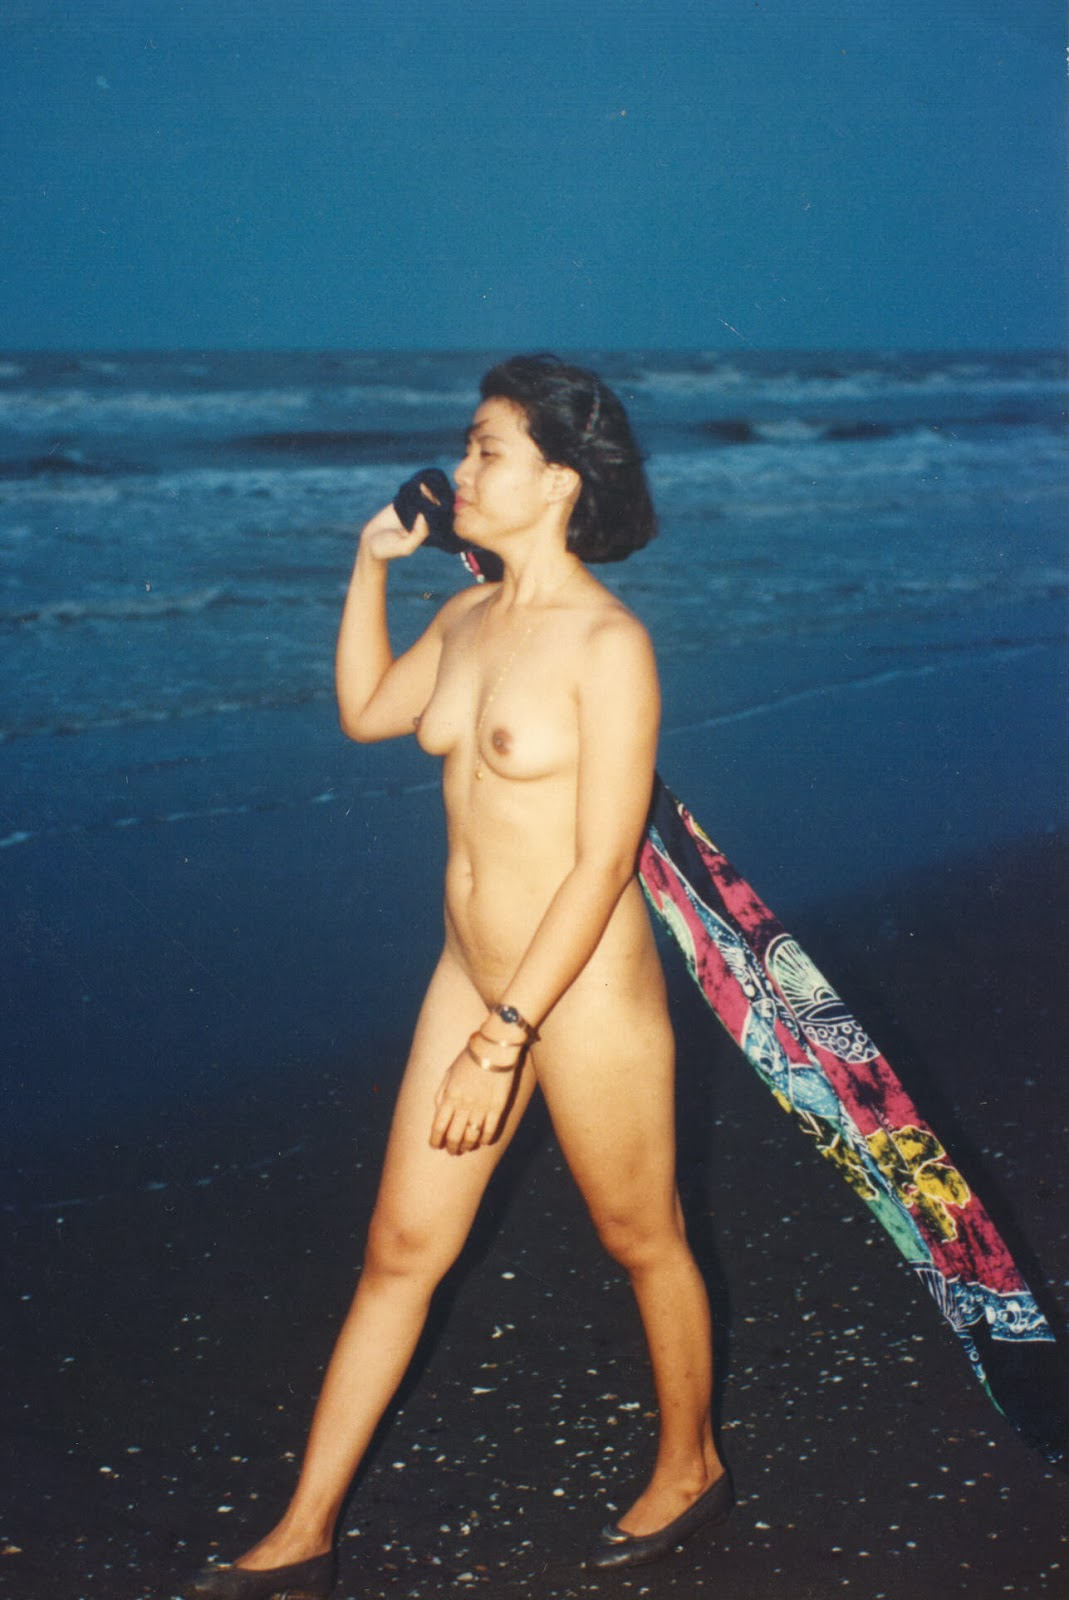 indonesian babes model nude